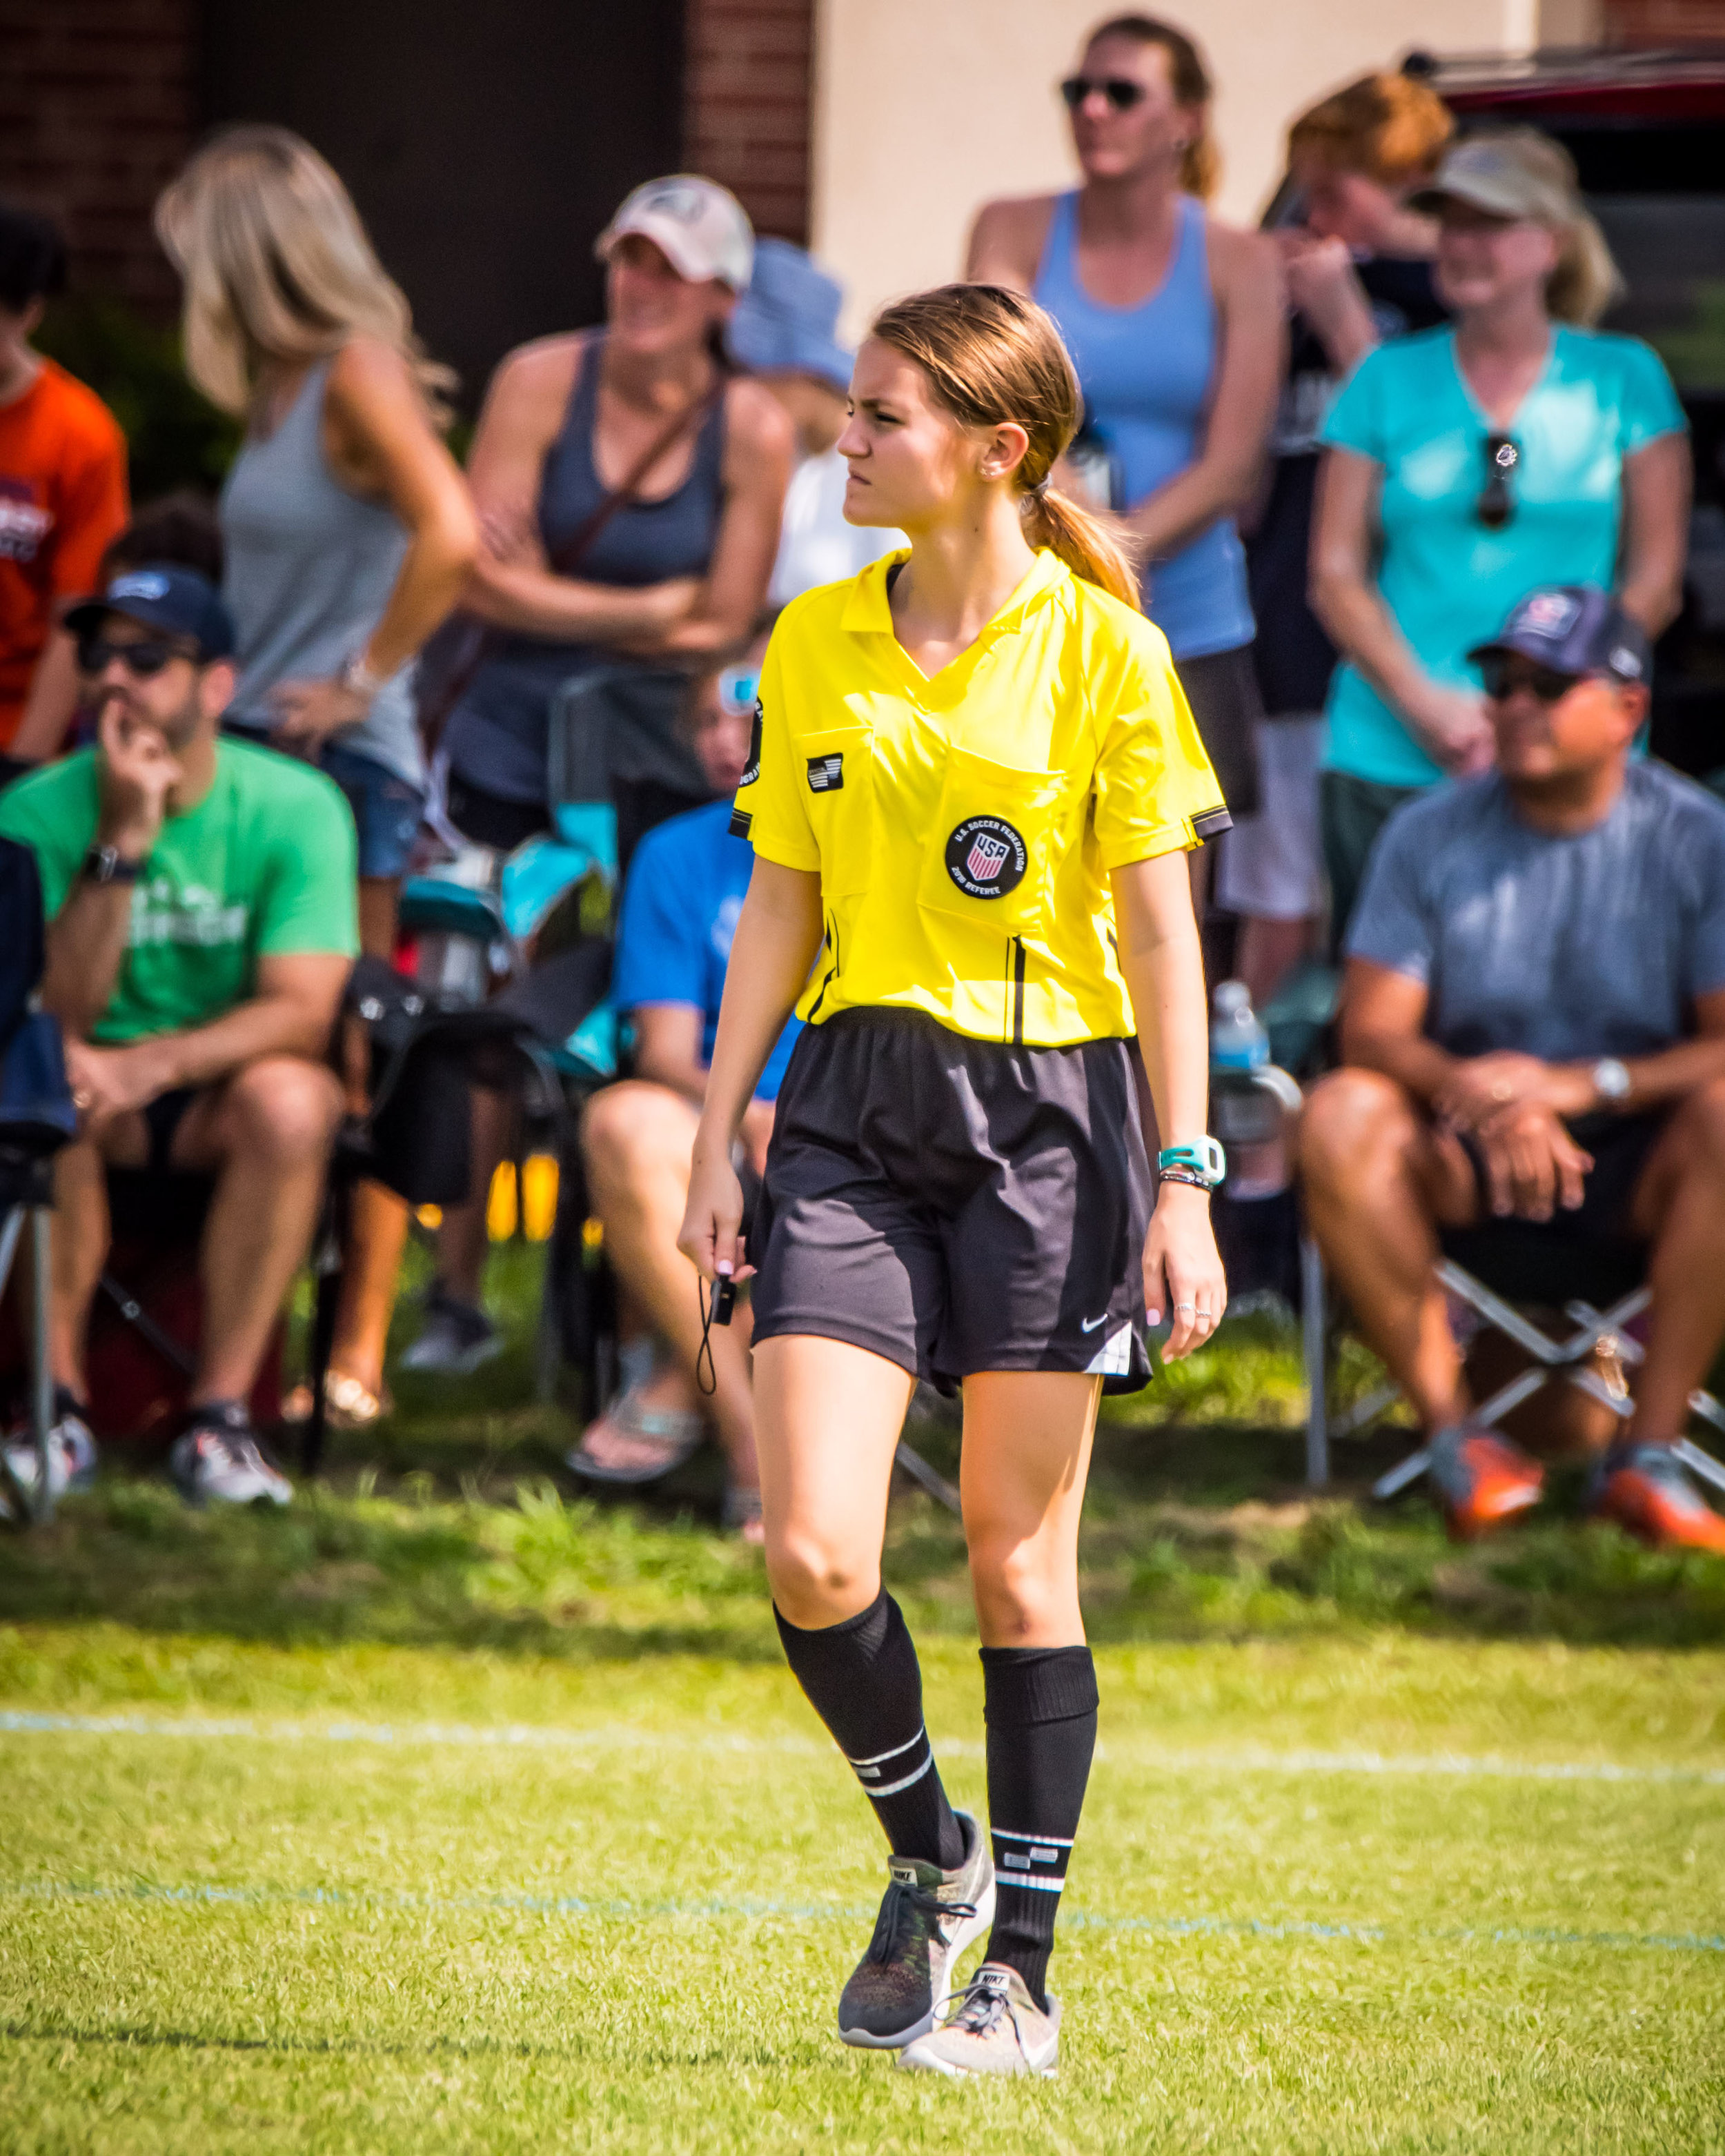 Referee Photo # 2 .jpg